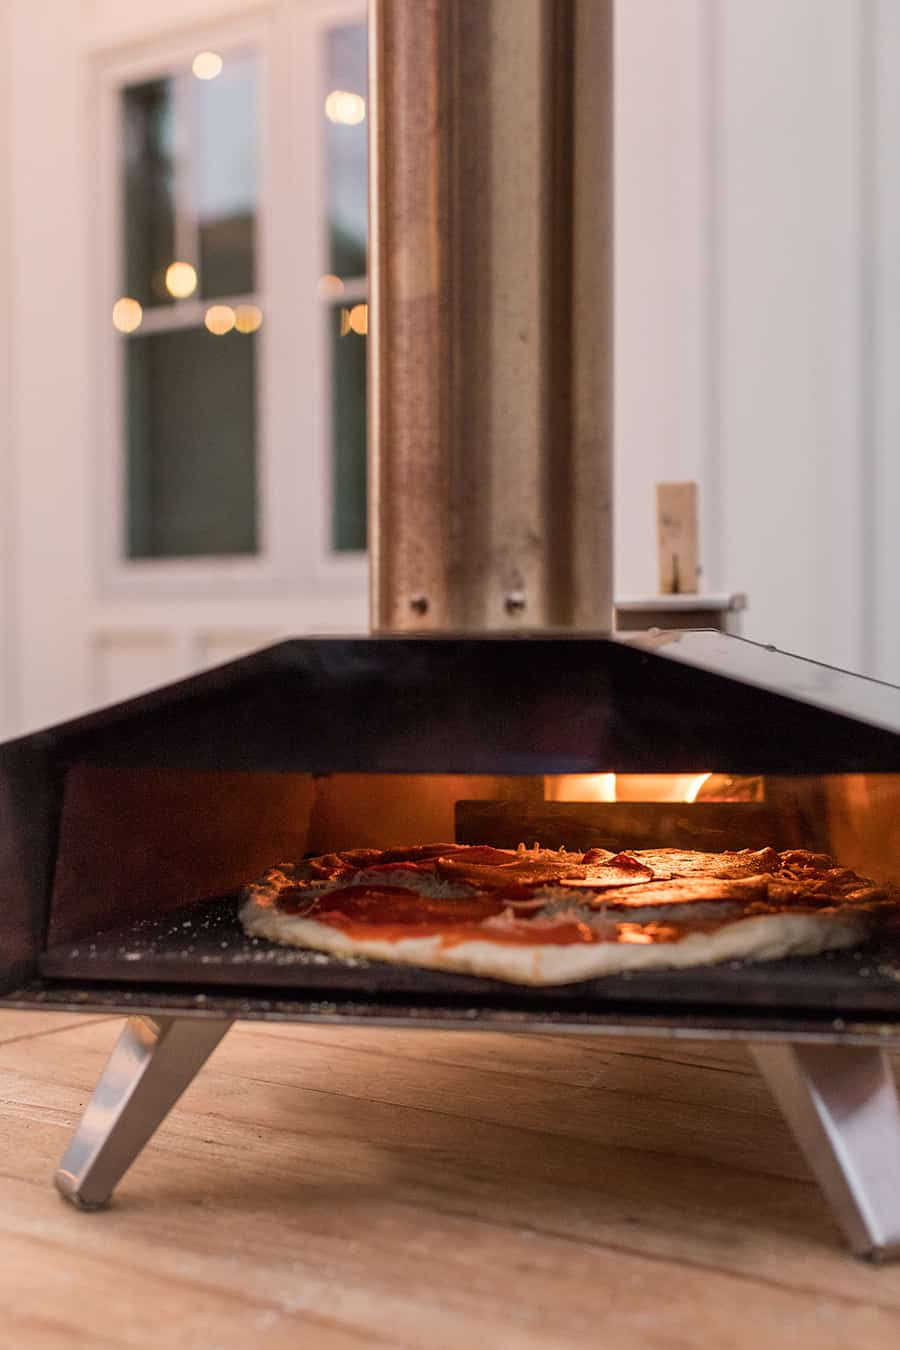 Uuni pizza oven with pizza cooking inside.